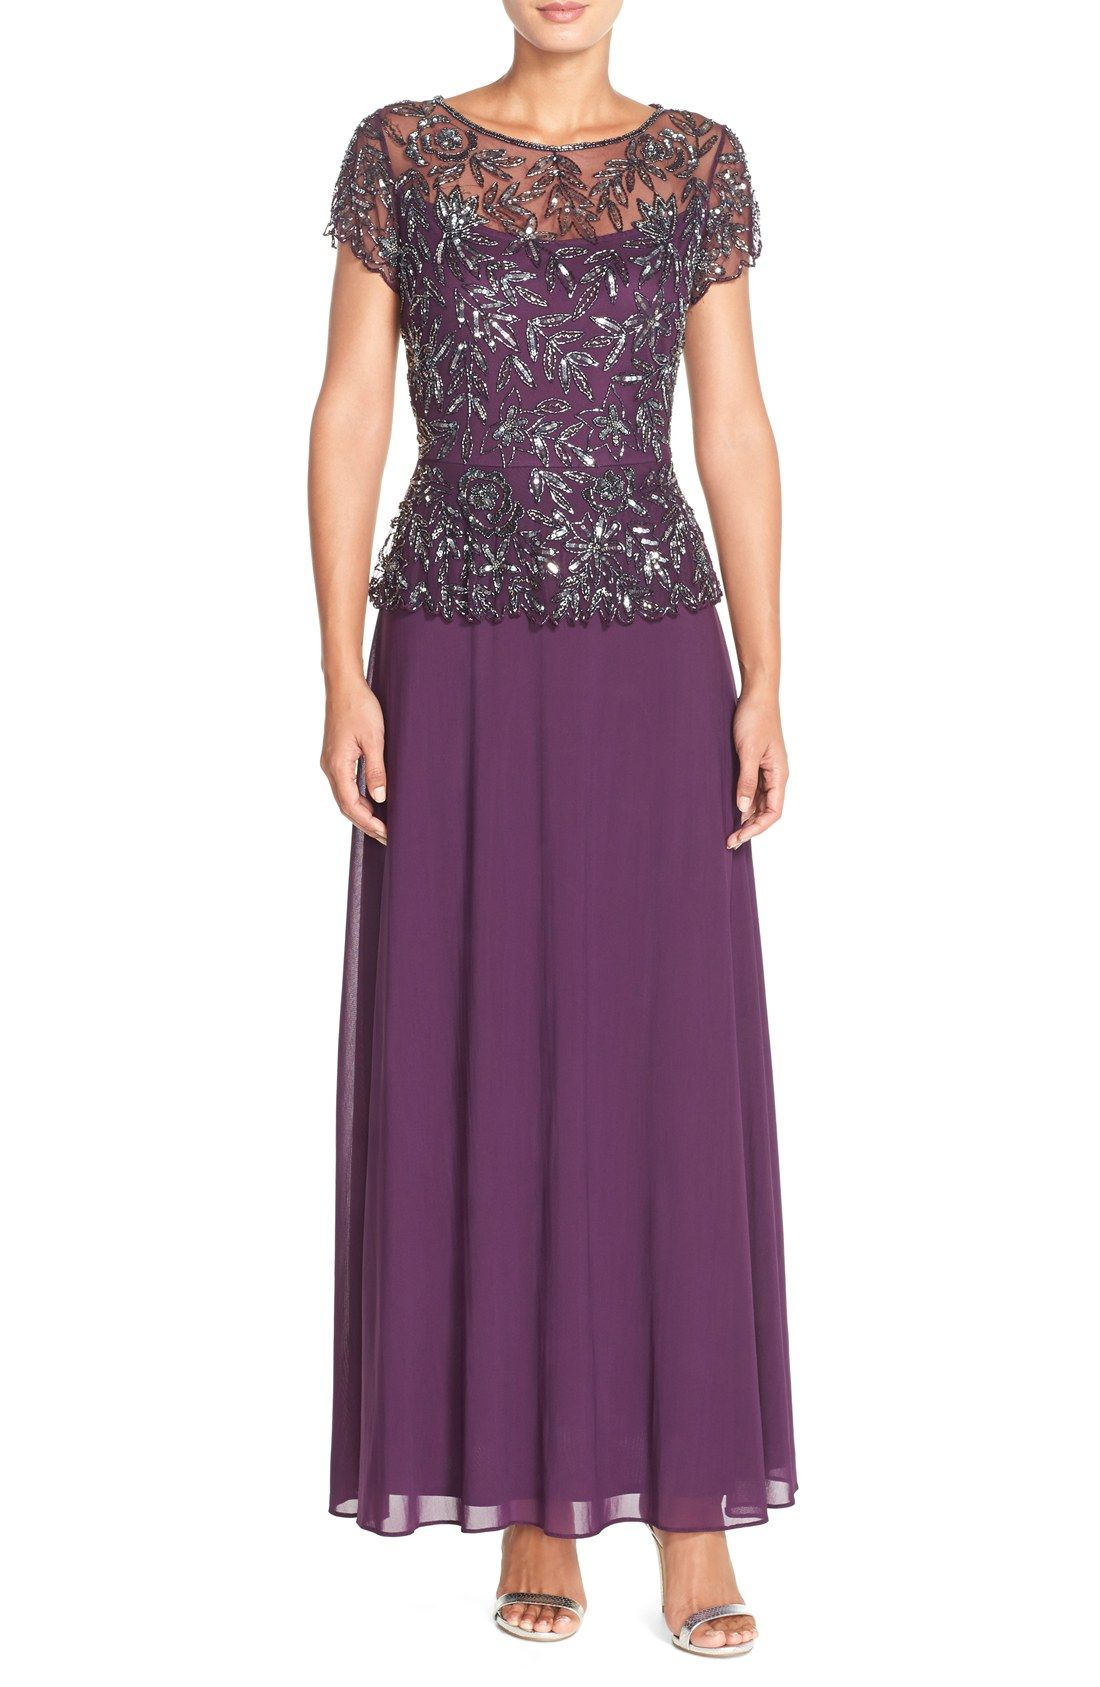 ee5007e4ddf Nordstrom  208 -- Pisarro Nights Beaded Mesh Mock Two-Piece Gown ...